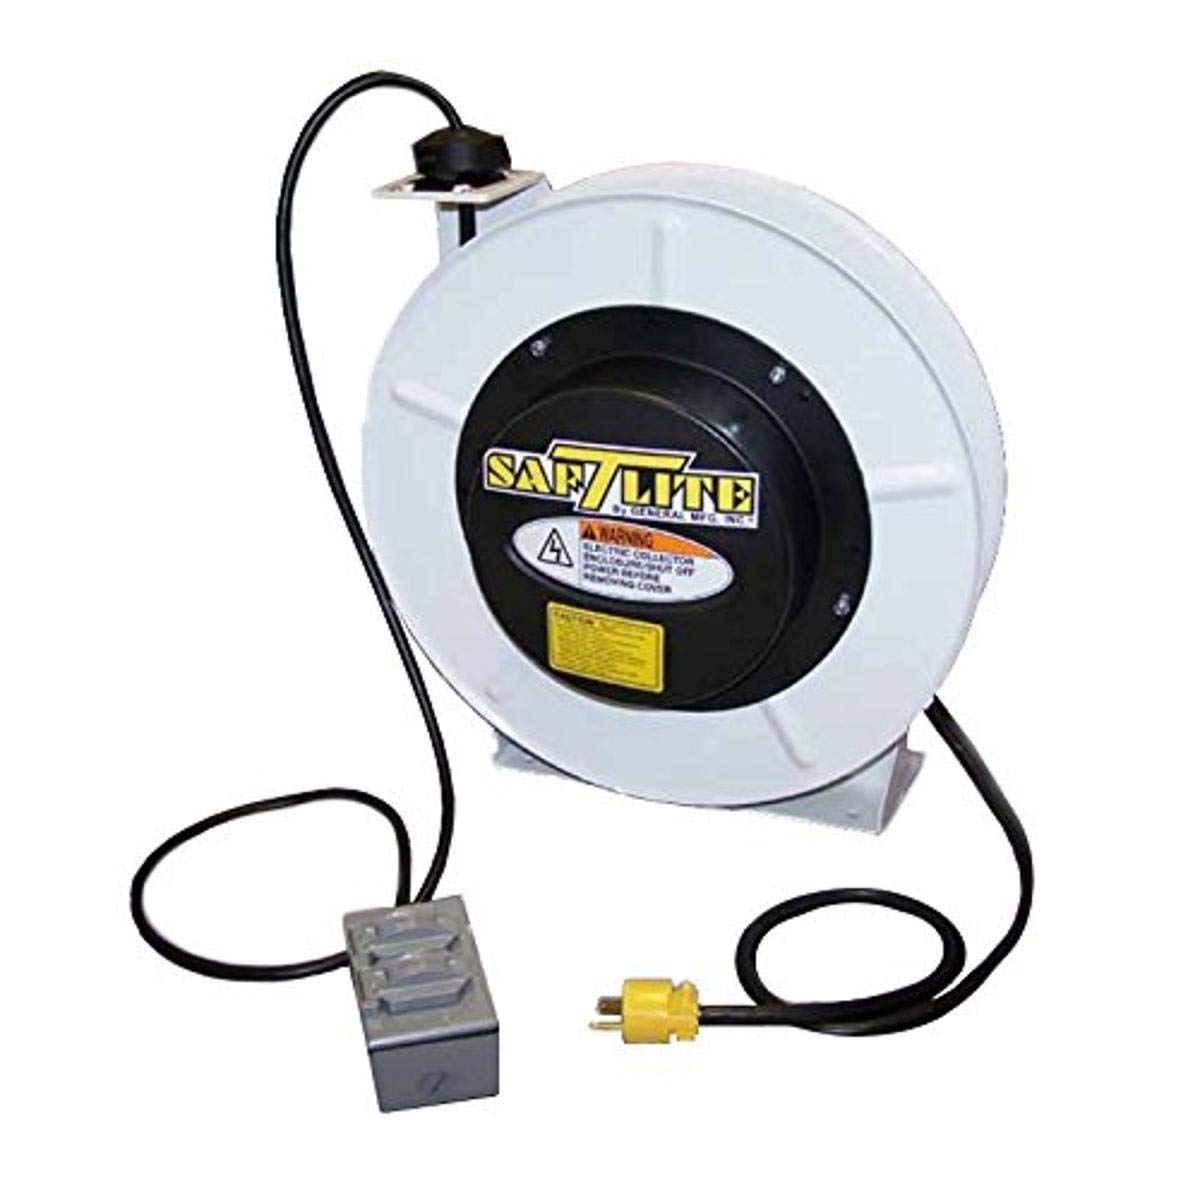 Ranking TOP17 Saf-T-Lite Max 66% OFF 4550-5101 Power Supply 50ft 5505 Industrial Gr Cord